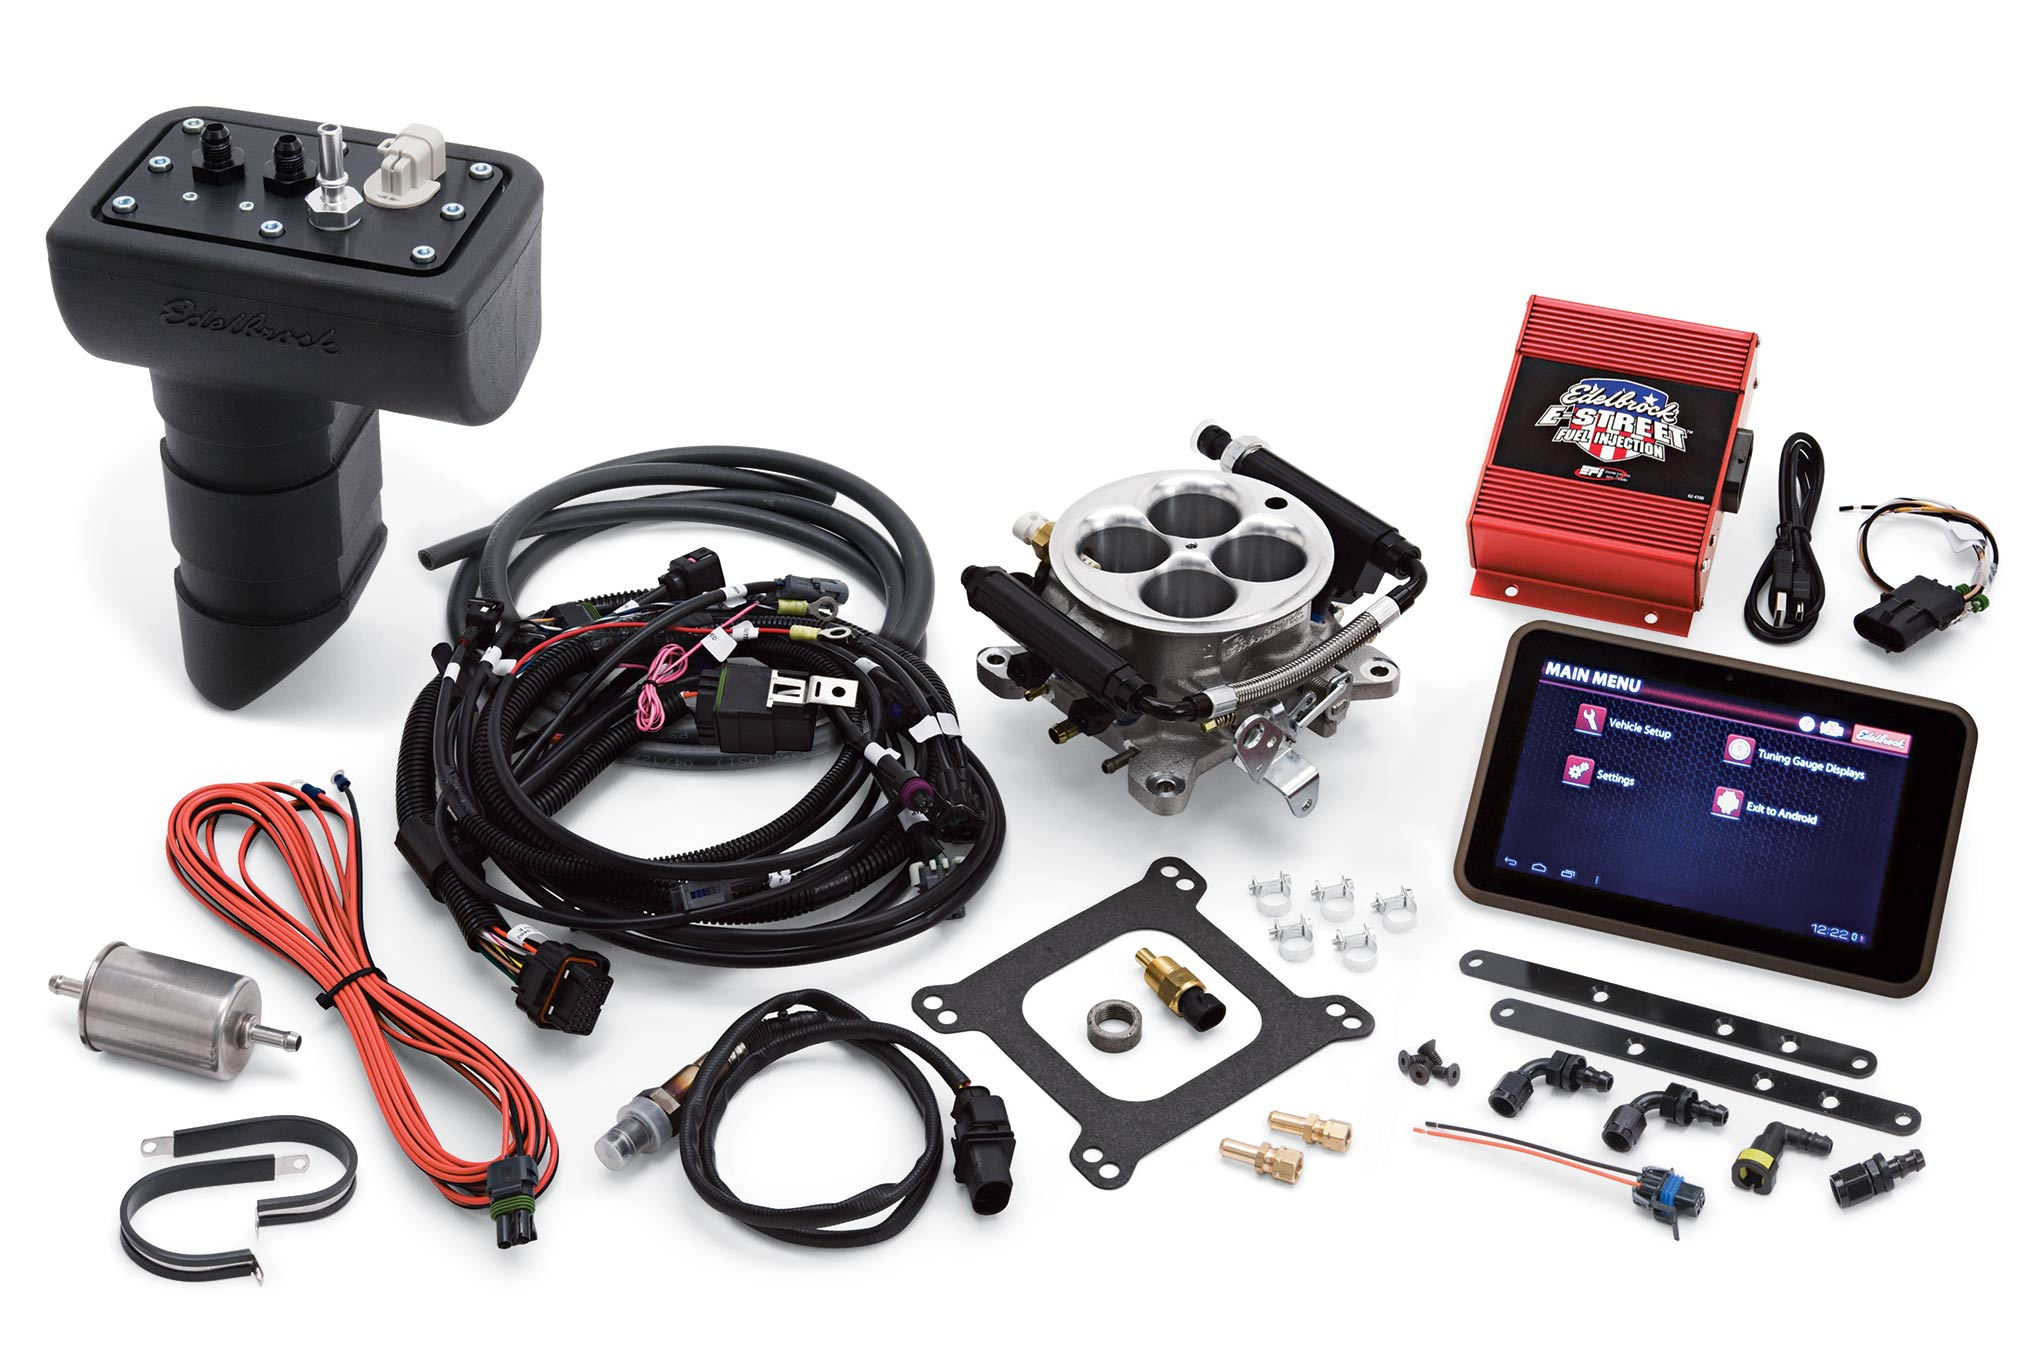 Edelbrock's E-Street EFI kit comes with everything necessary for installation. We opted to include the EFI Sump Fuel Pump kit.